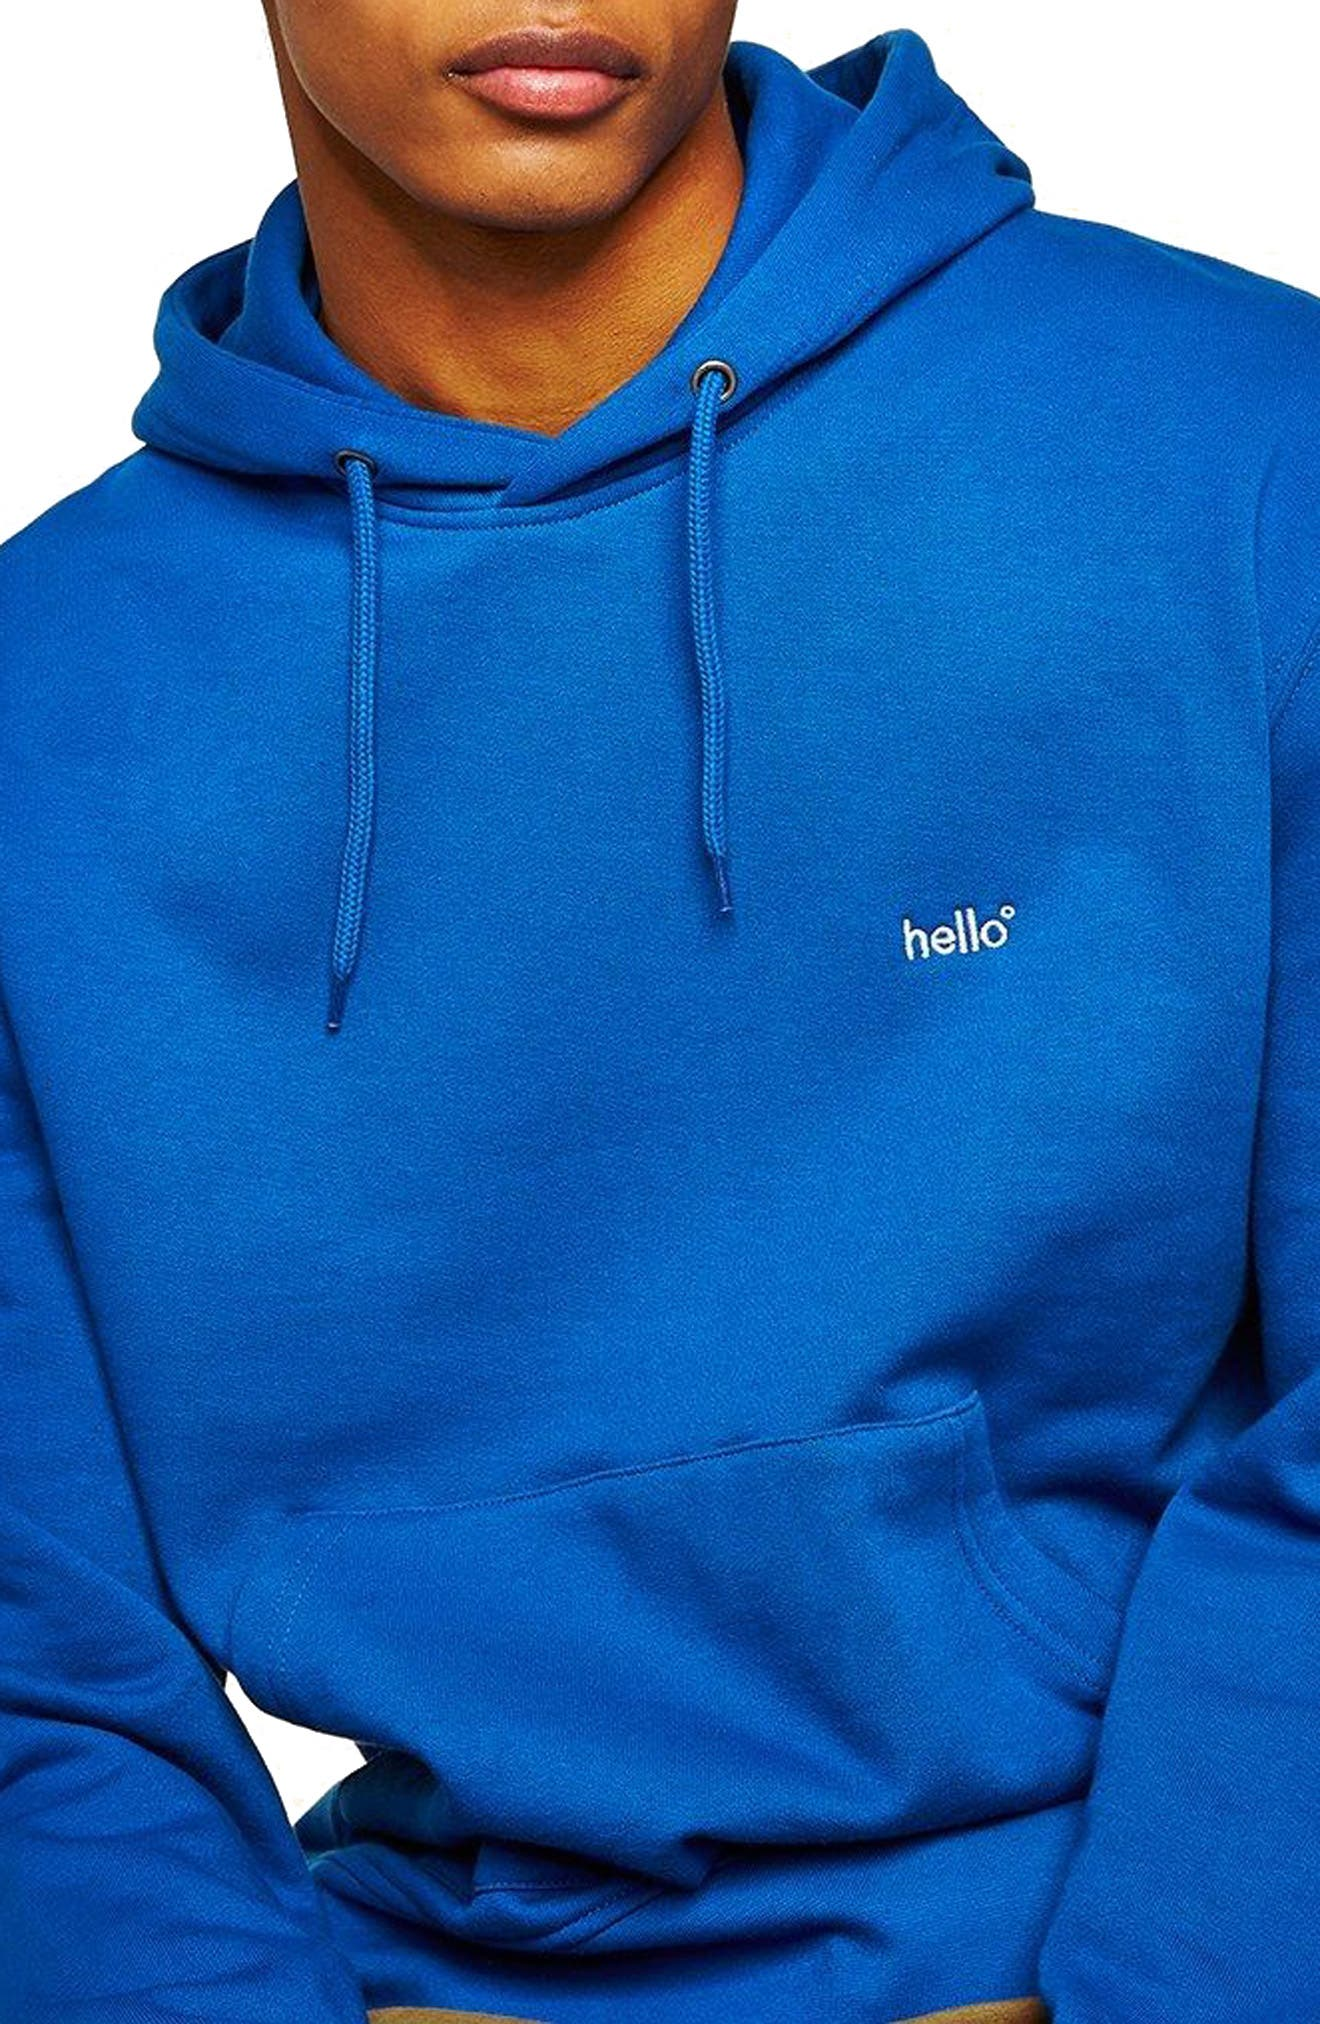 Classic Fit Tristan Hello Embroidered Hoodie,                             Main thumbnail 1, color,